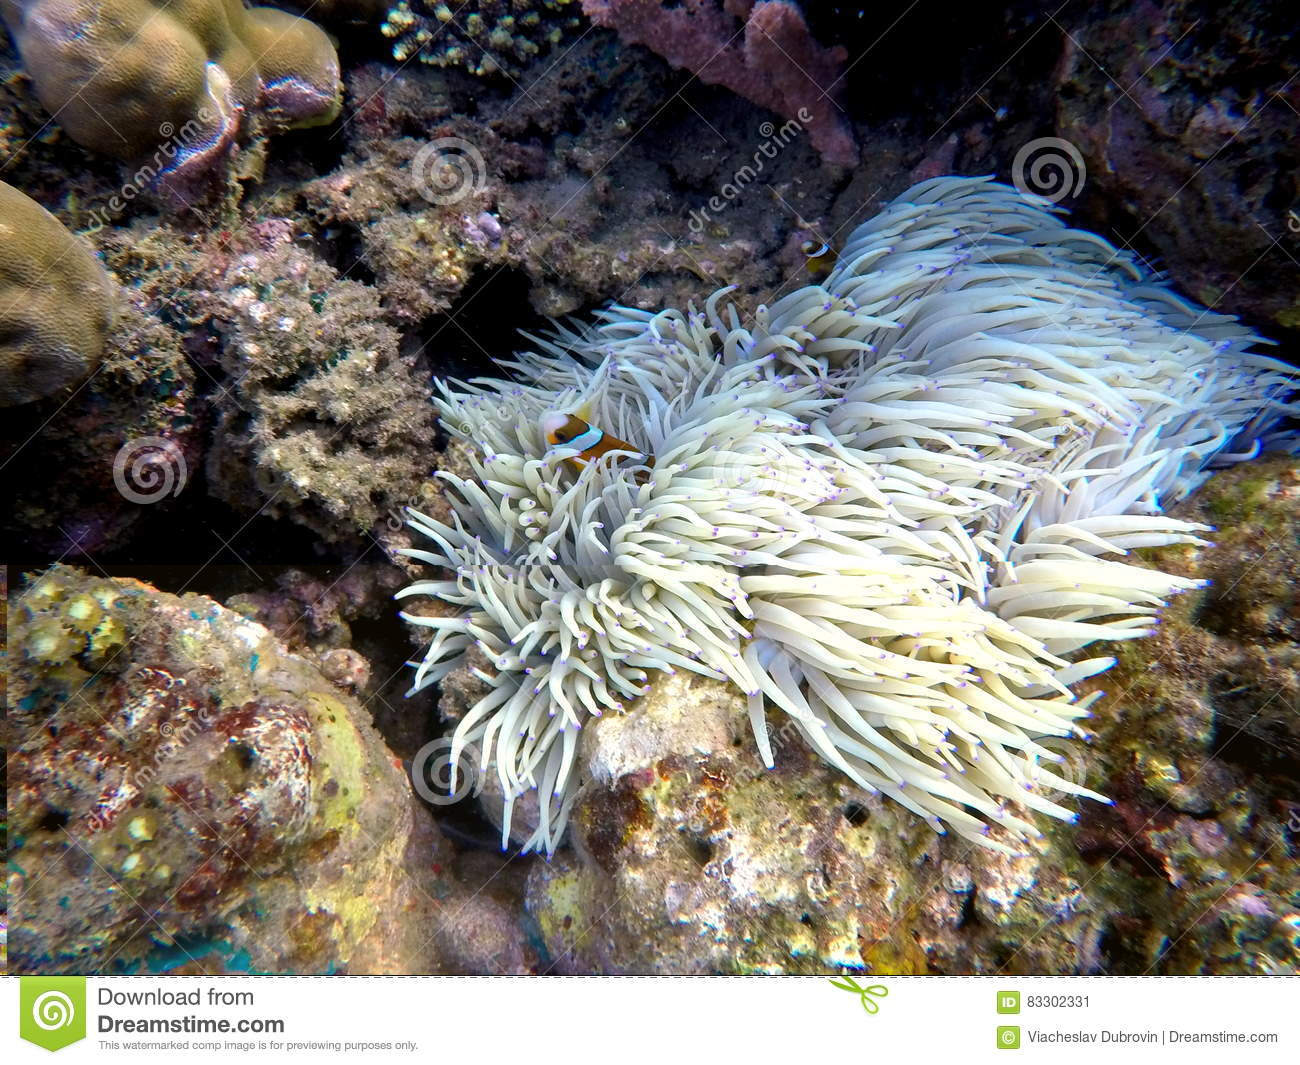 Clownfish in actinia plant inside a round coral. Orange and white striped clown fish